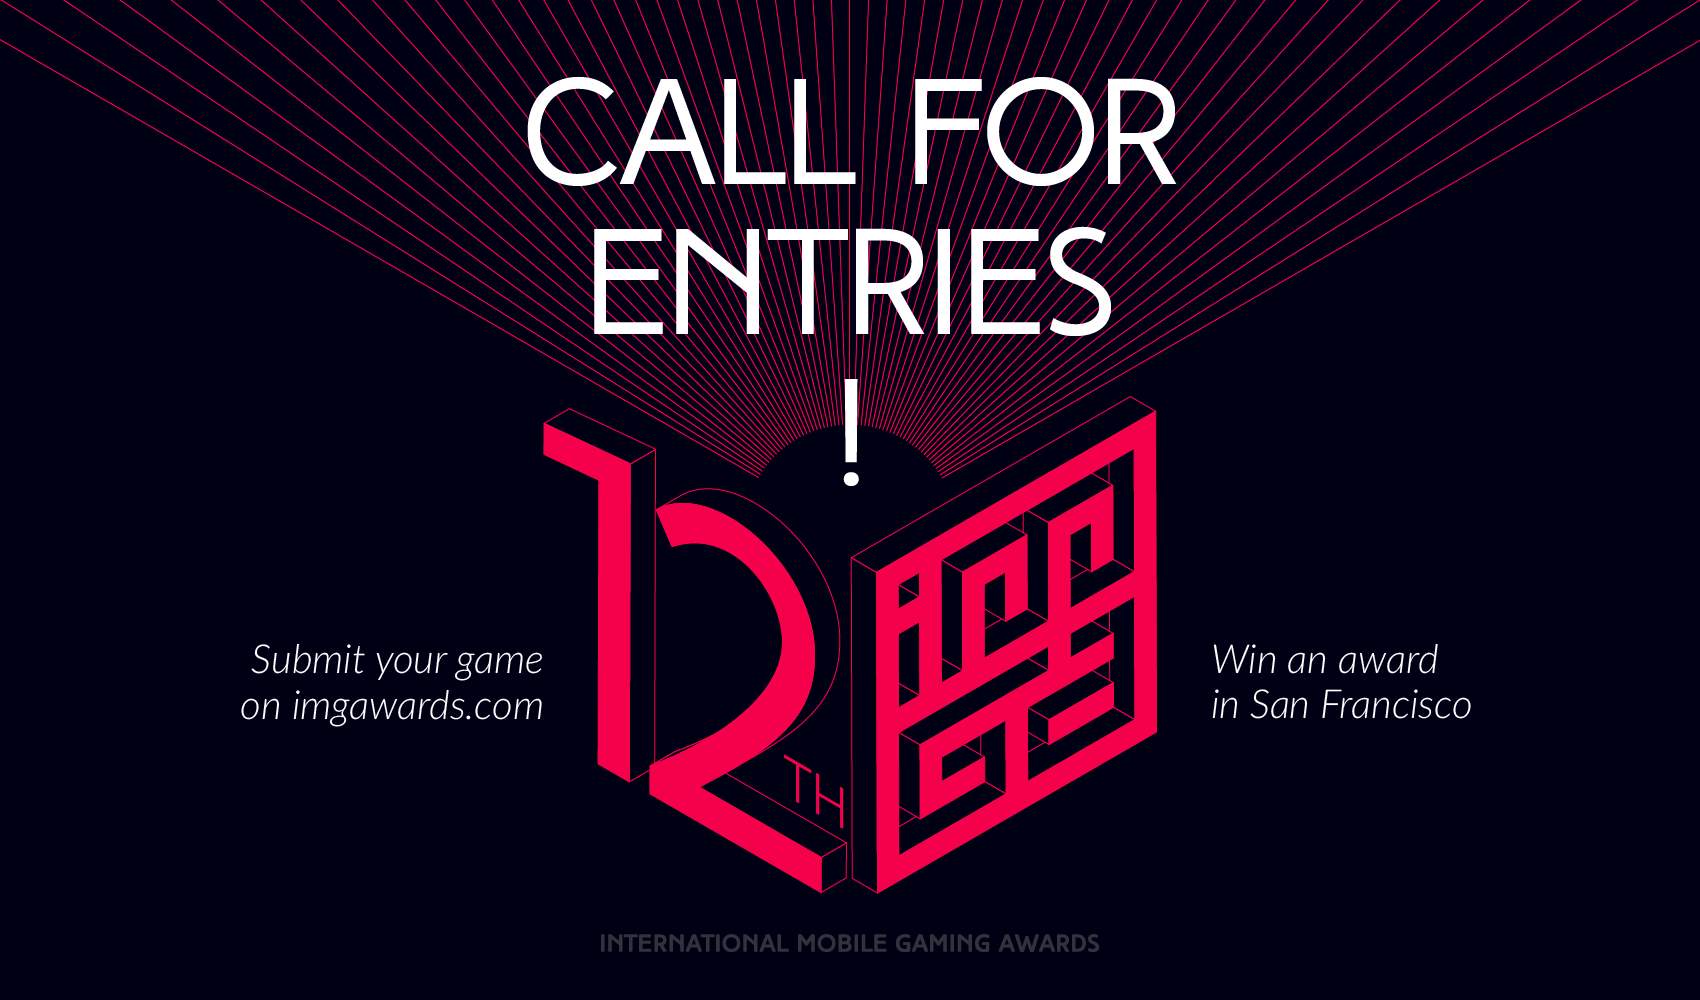 The 12th IMGA Call for Entries Is Now Open